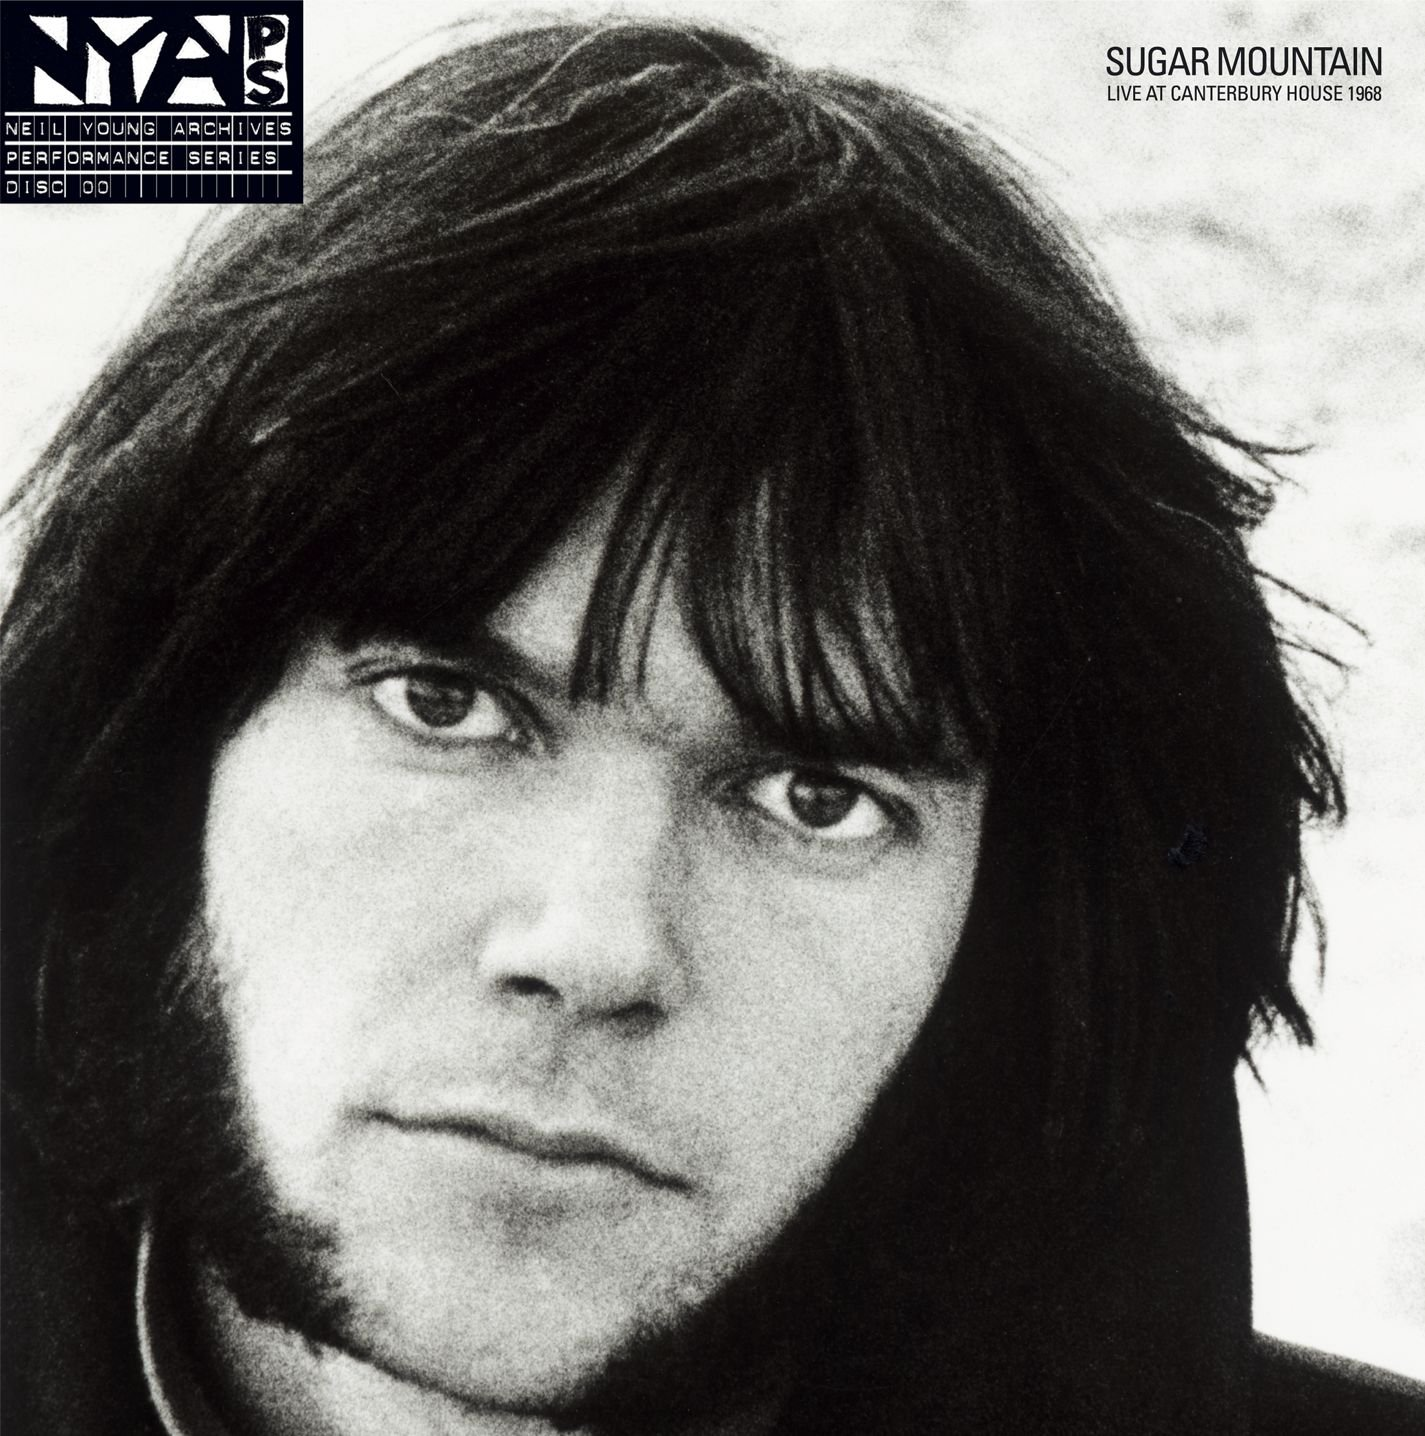 Sugar Mountain: Live at Canterbury House 1968 [Vinyl] by VINYL